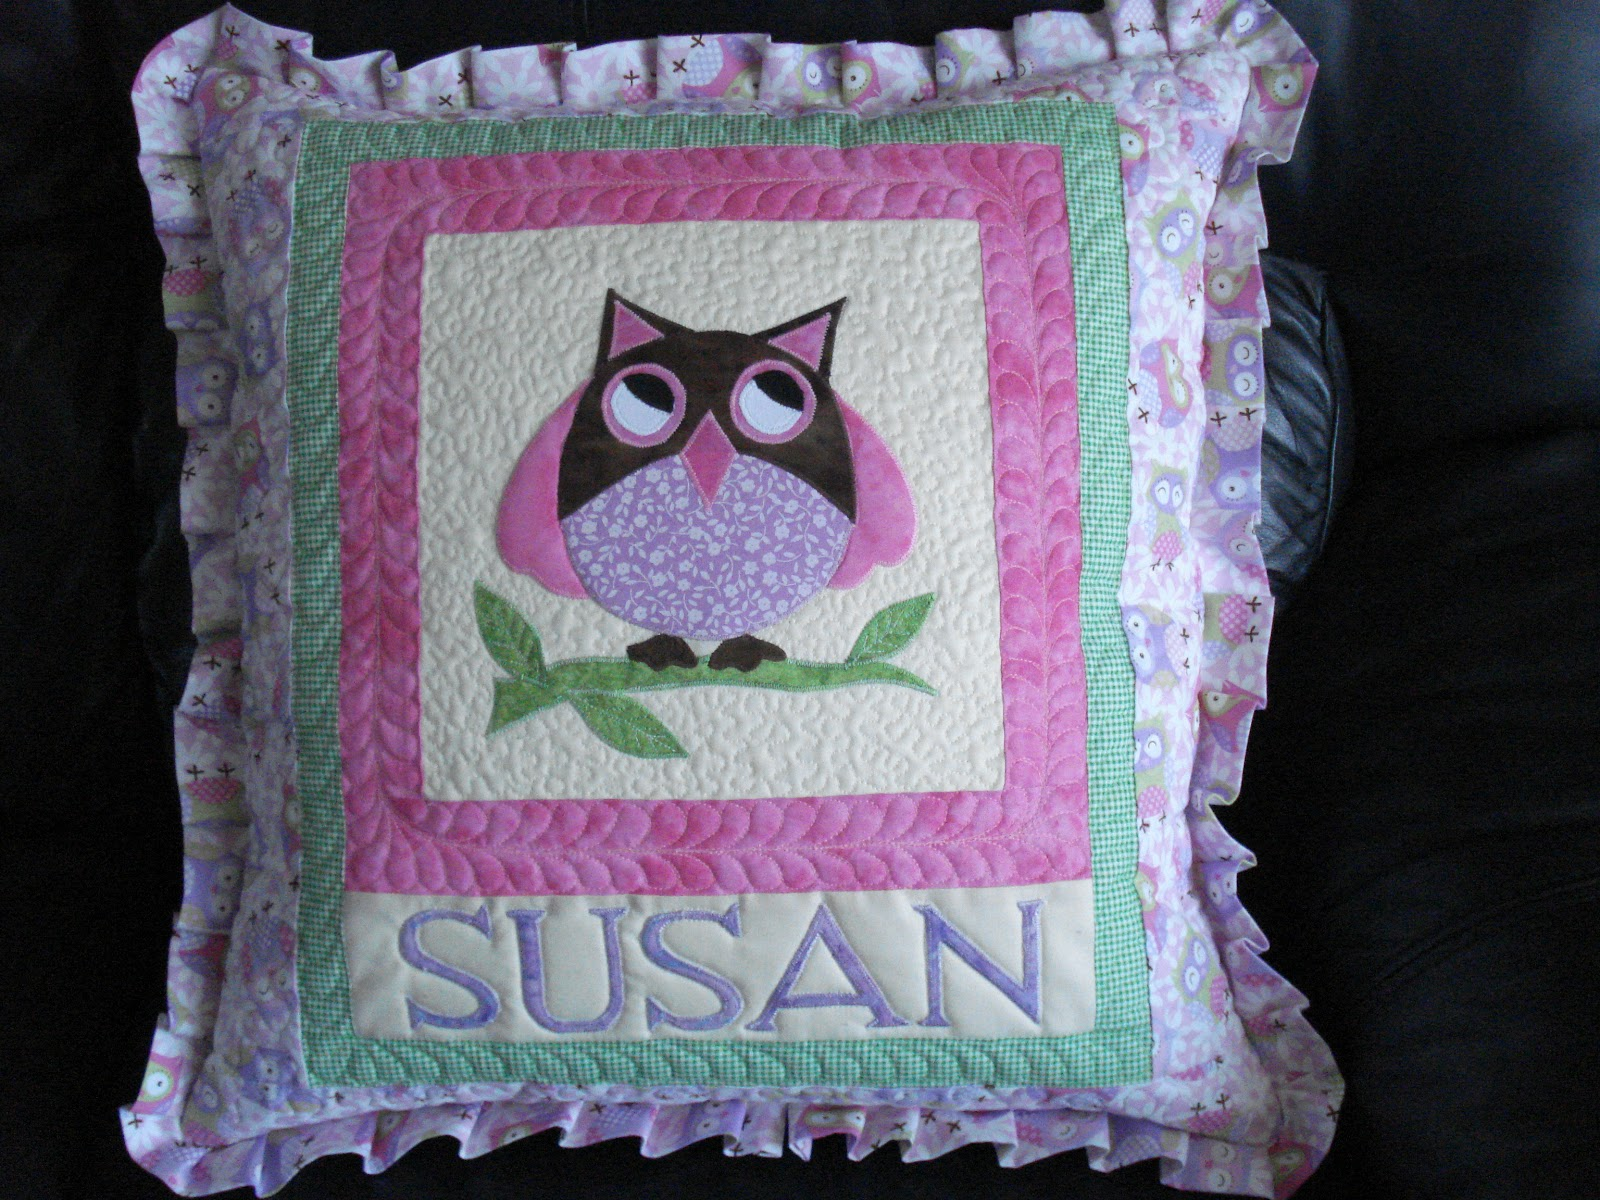 The Nifty Stitcher Cushions